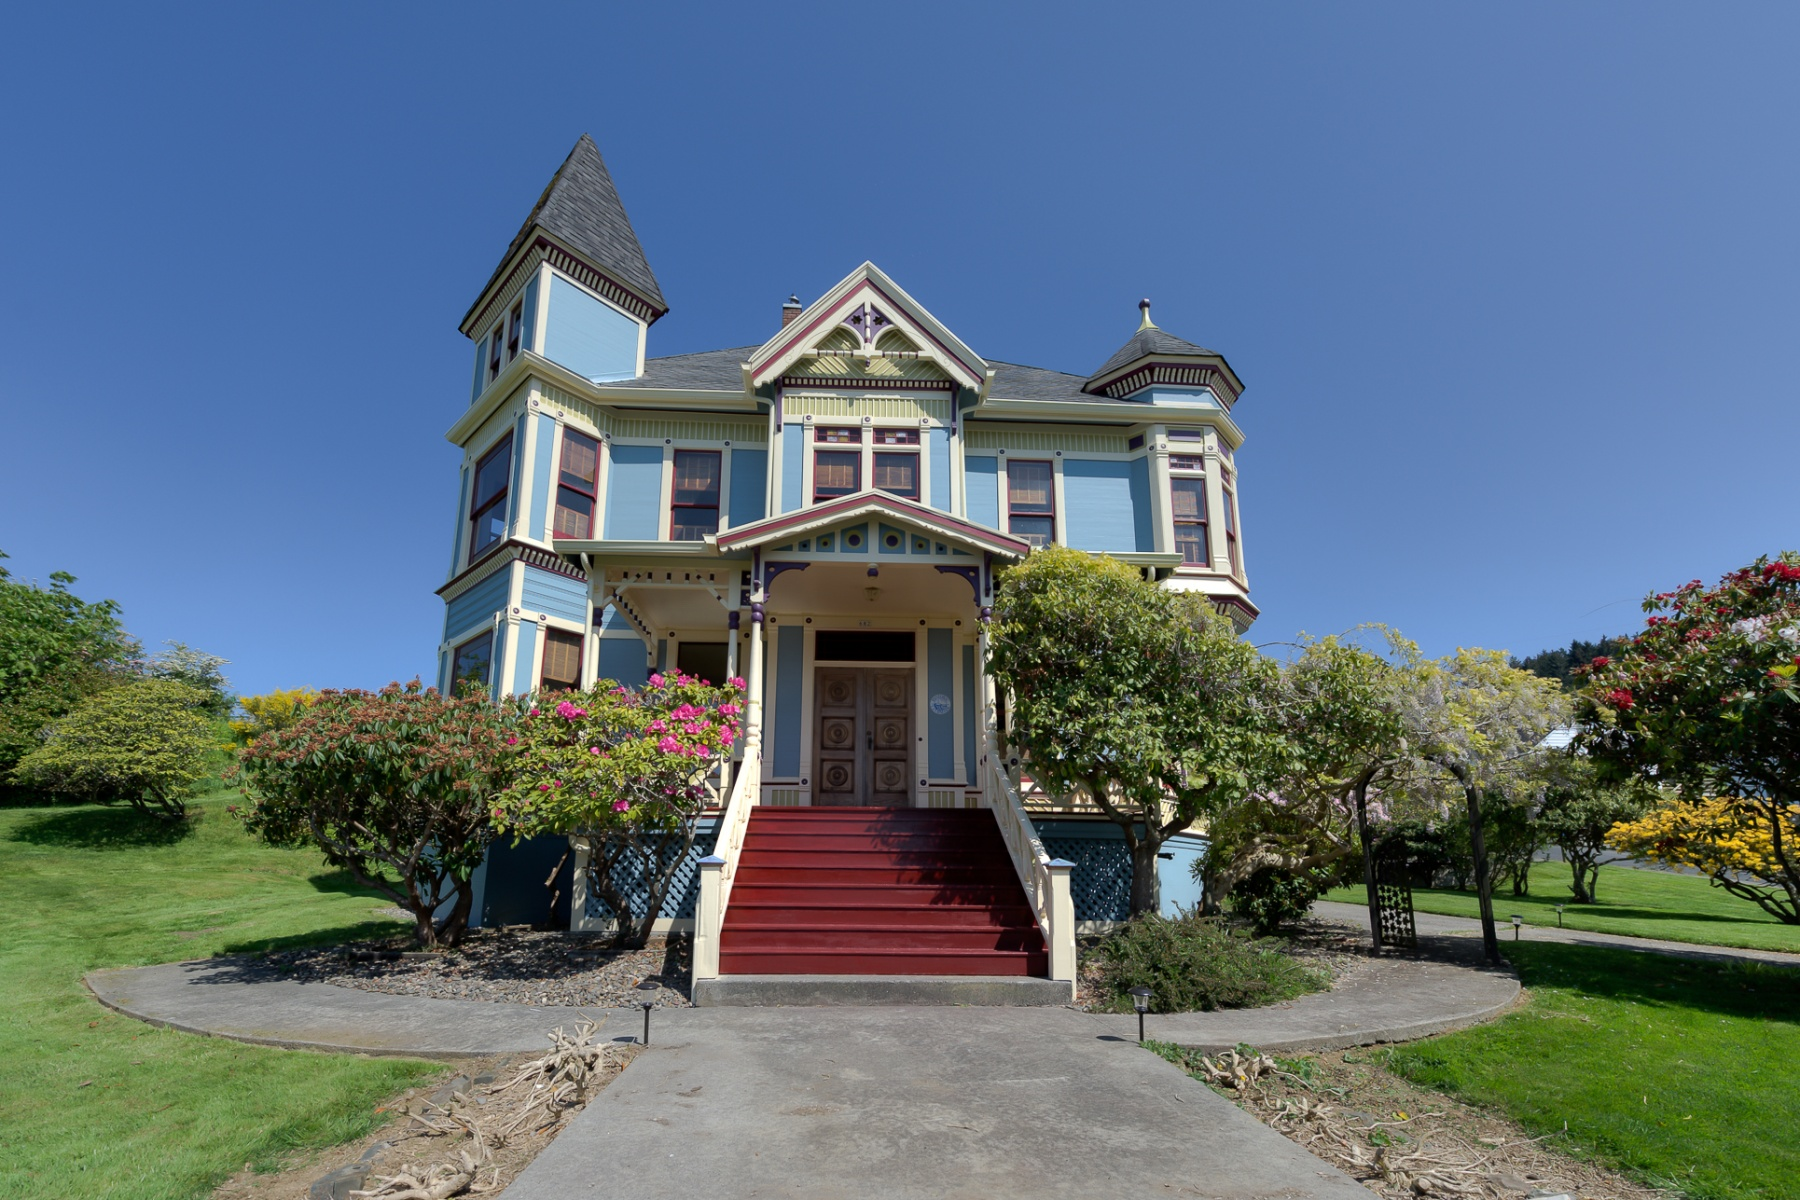 Single Family Home for Sale at 682 34th, ASTORIA 682 34th St Astoria, Oregon, 97103 United States